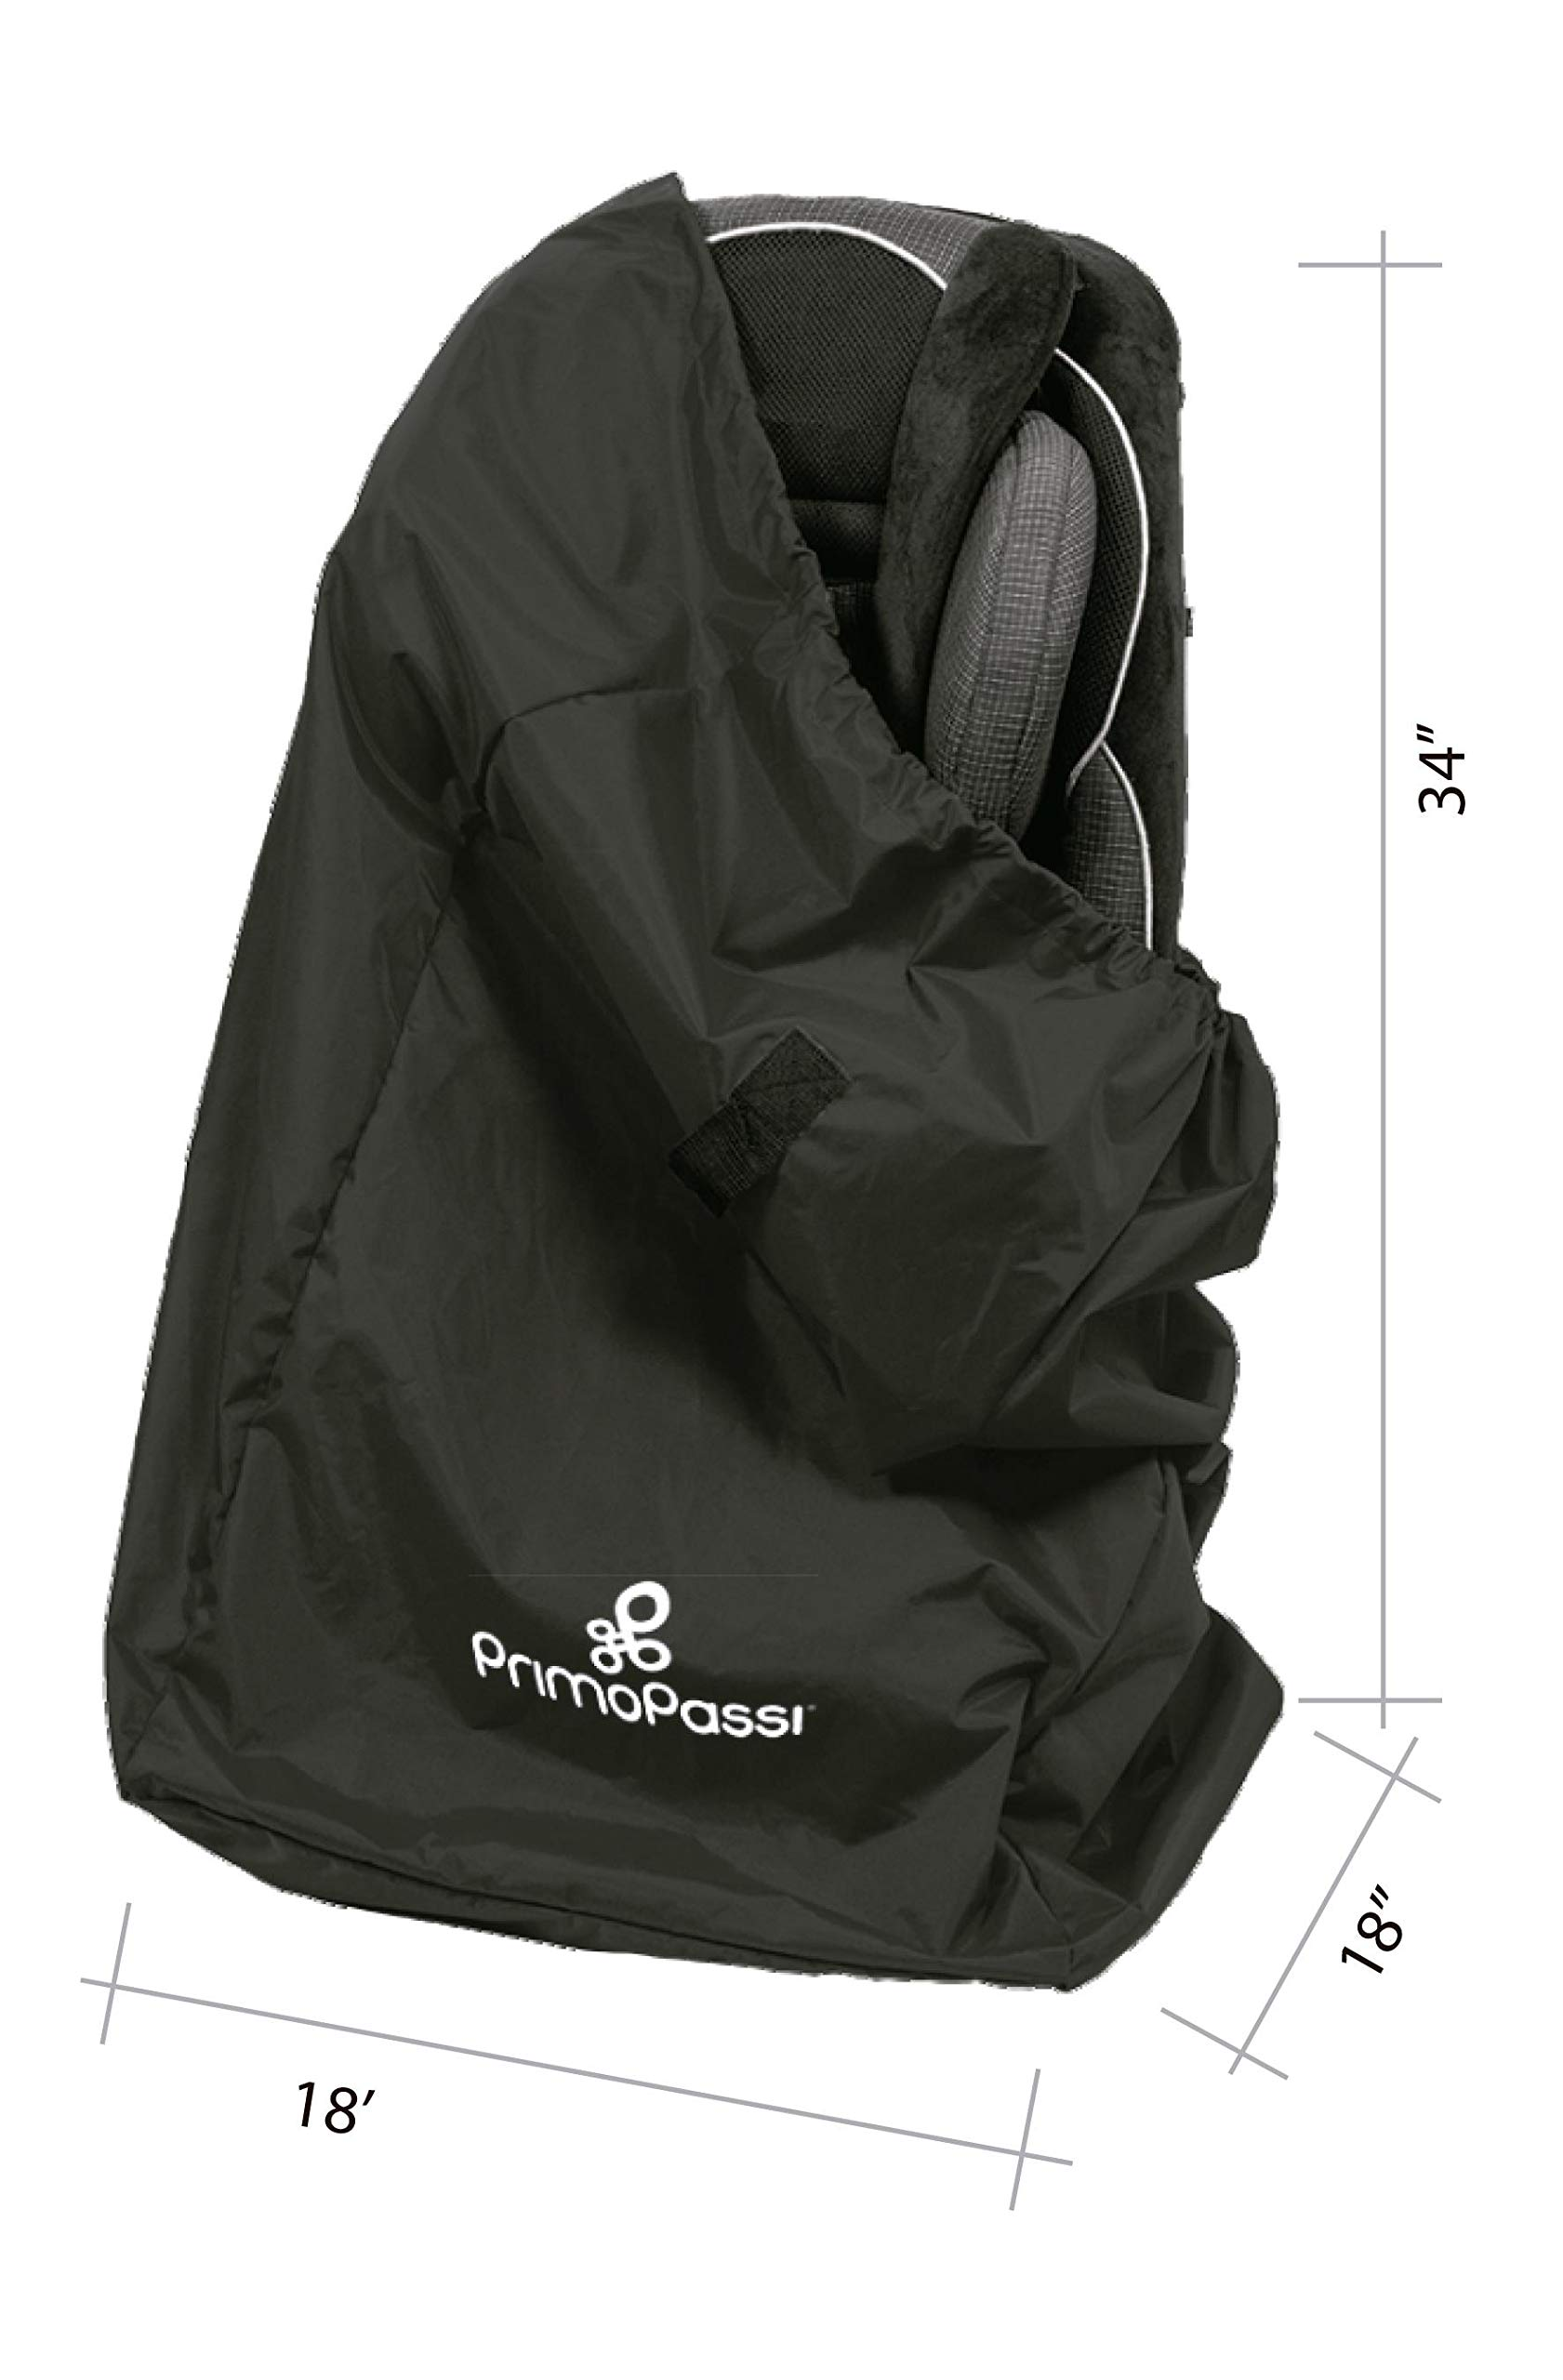 Primo Passi - Car Seat Travel Bag | Airport Gate Check Car Seat and Booster Bag (Black) by Primo Passi